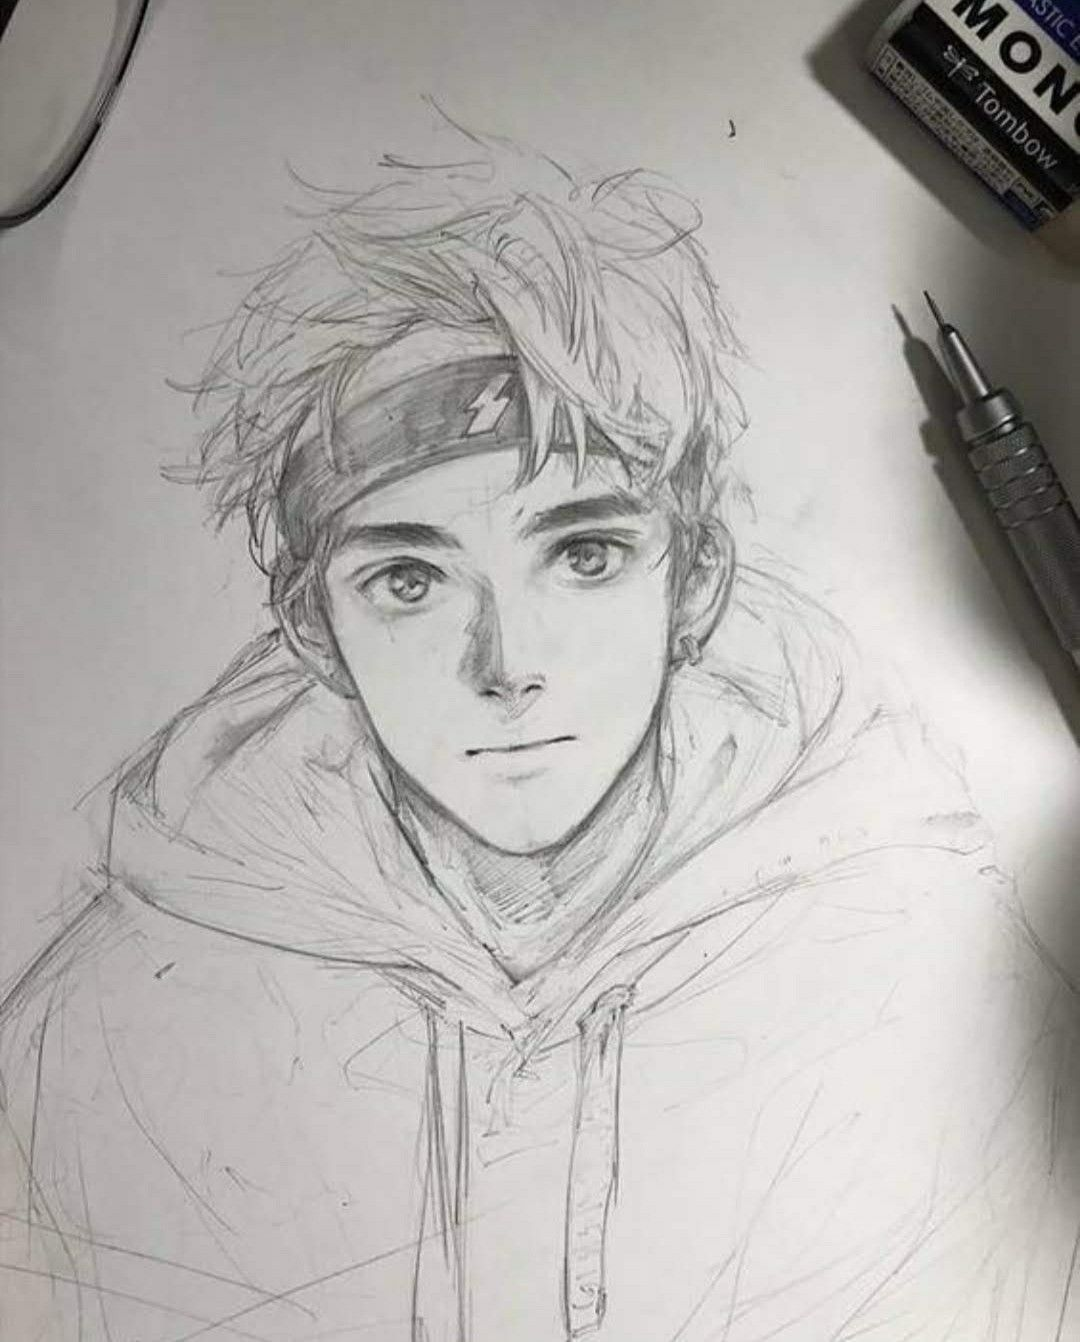 Pin by Ellaries on Rascunhos in 2020 Anime drawings